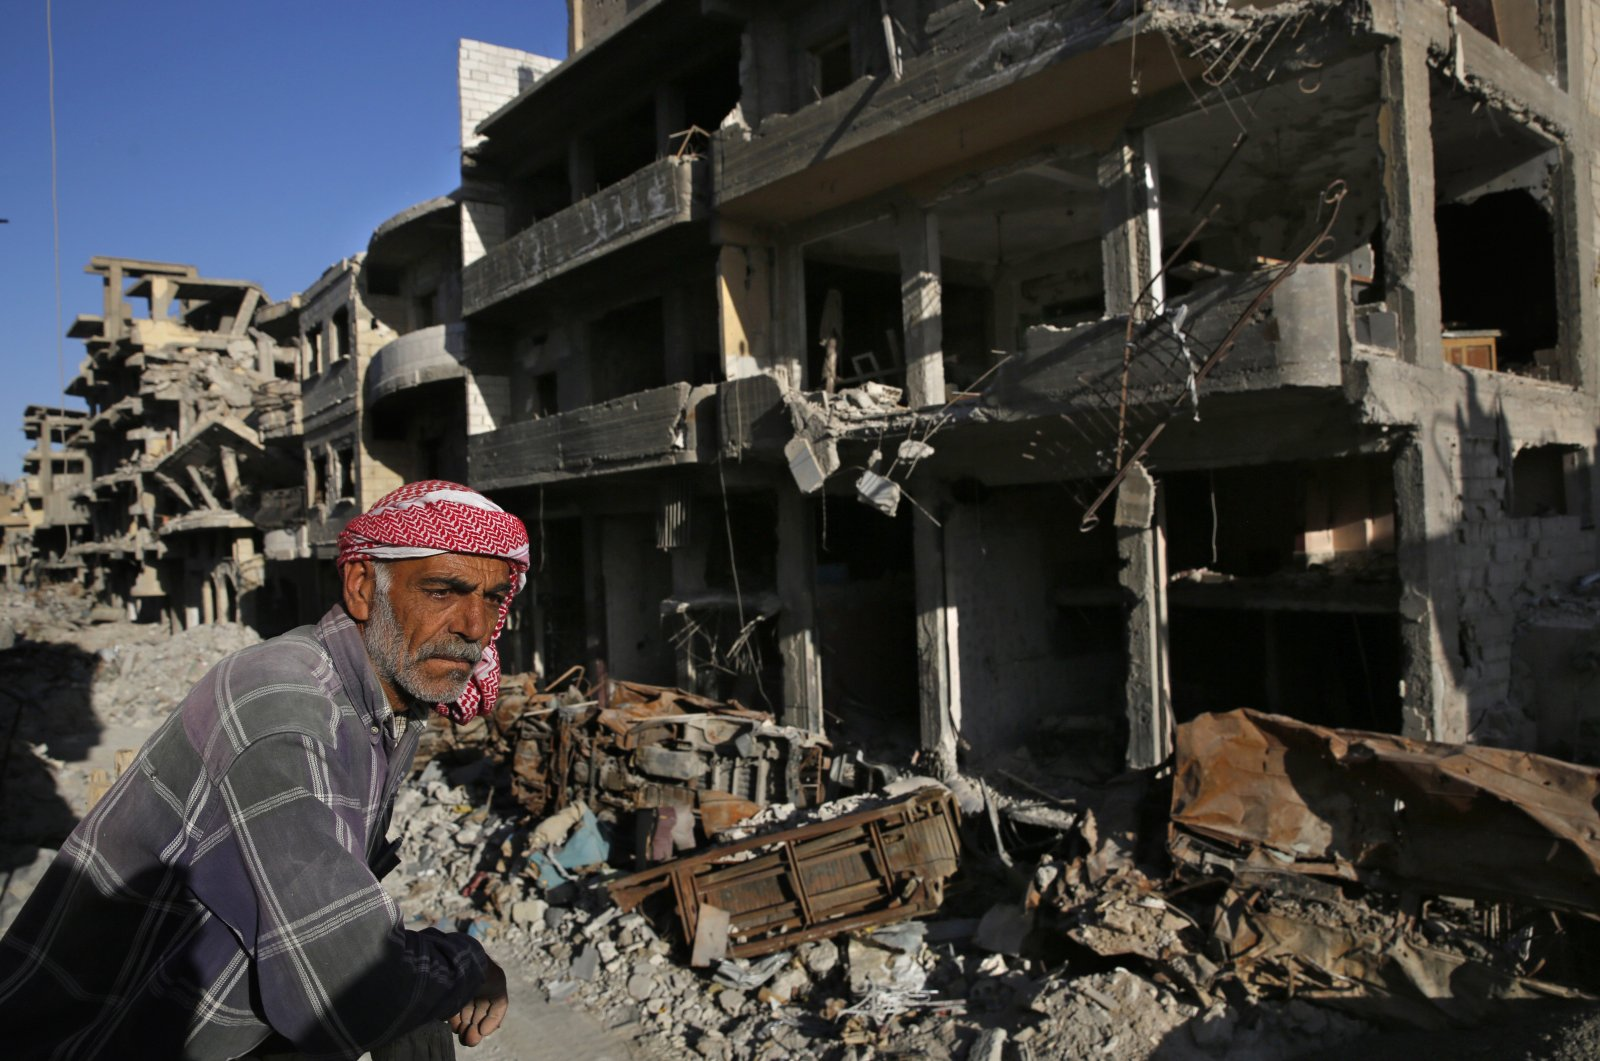 A Syrian man stands between buildings destroyed during the fighting against Daesh militants in Raqqa, April 5, 2018. (AP Photo)